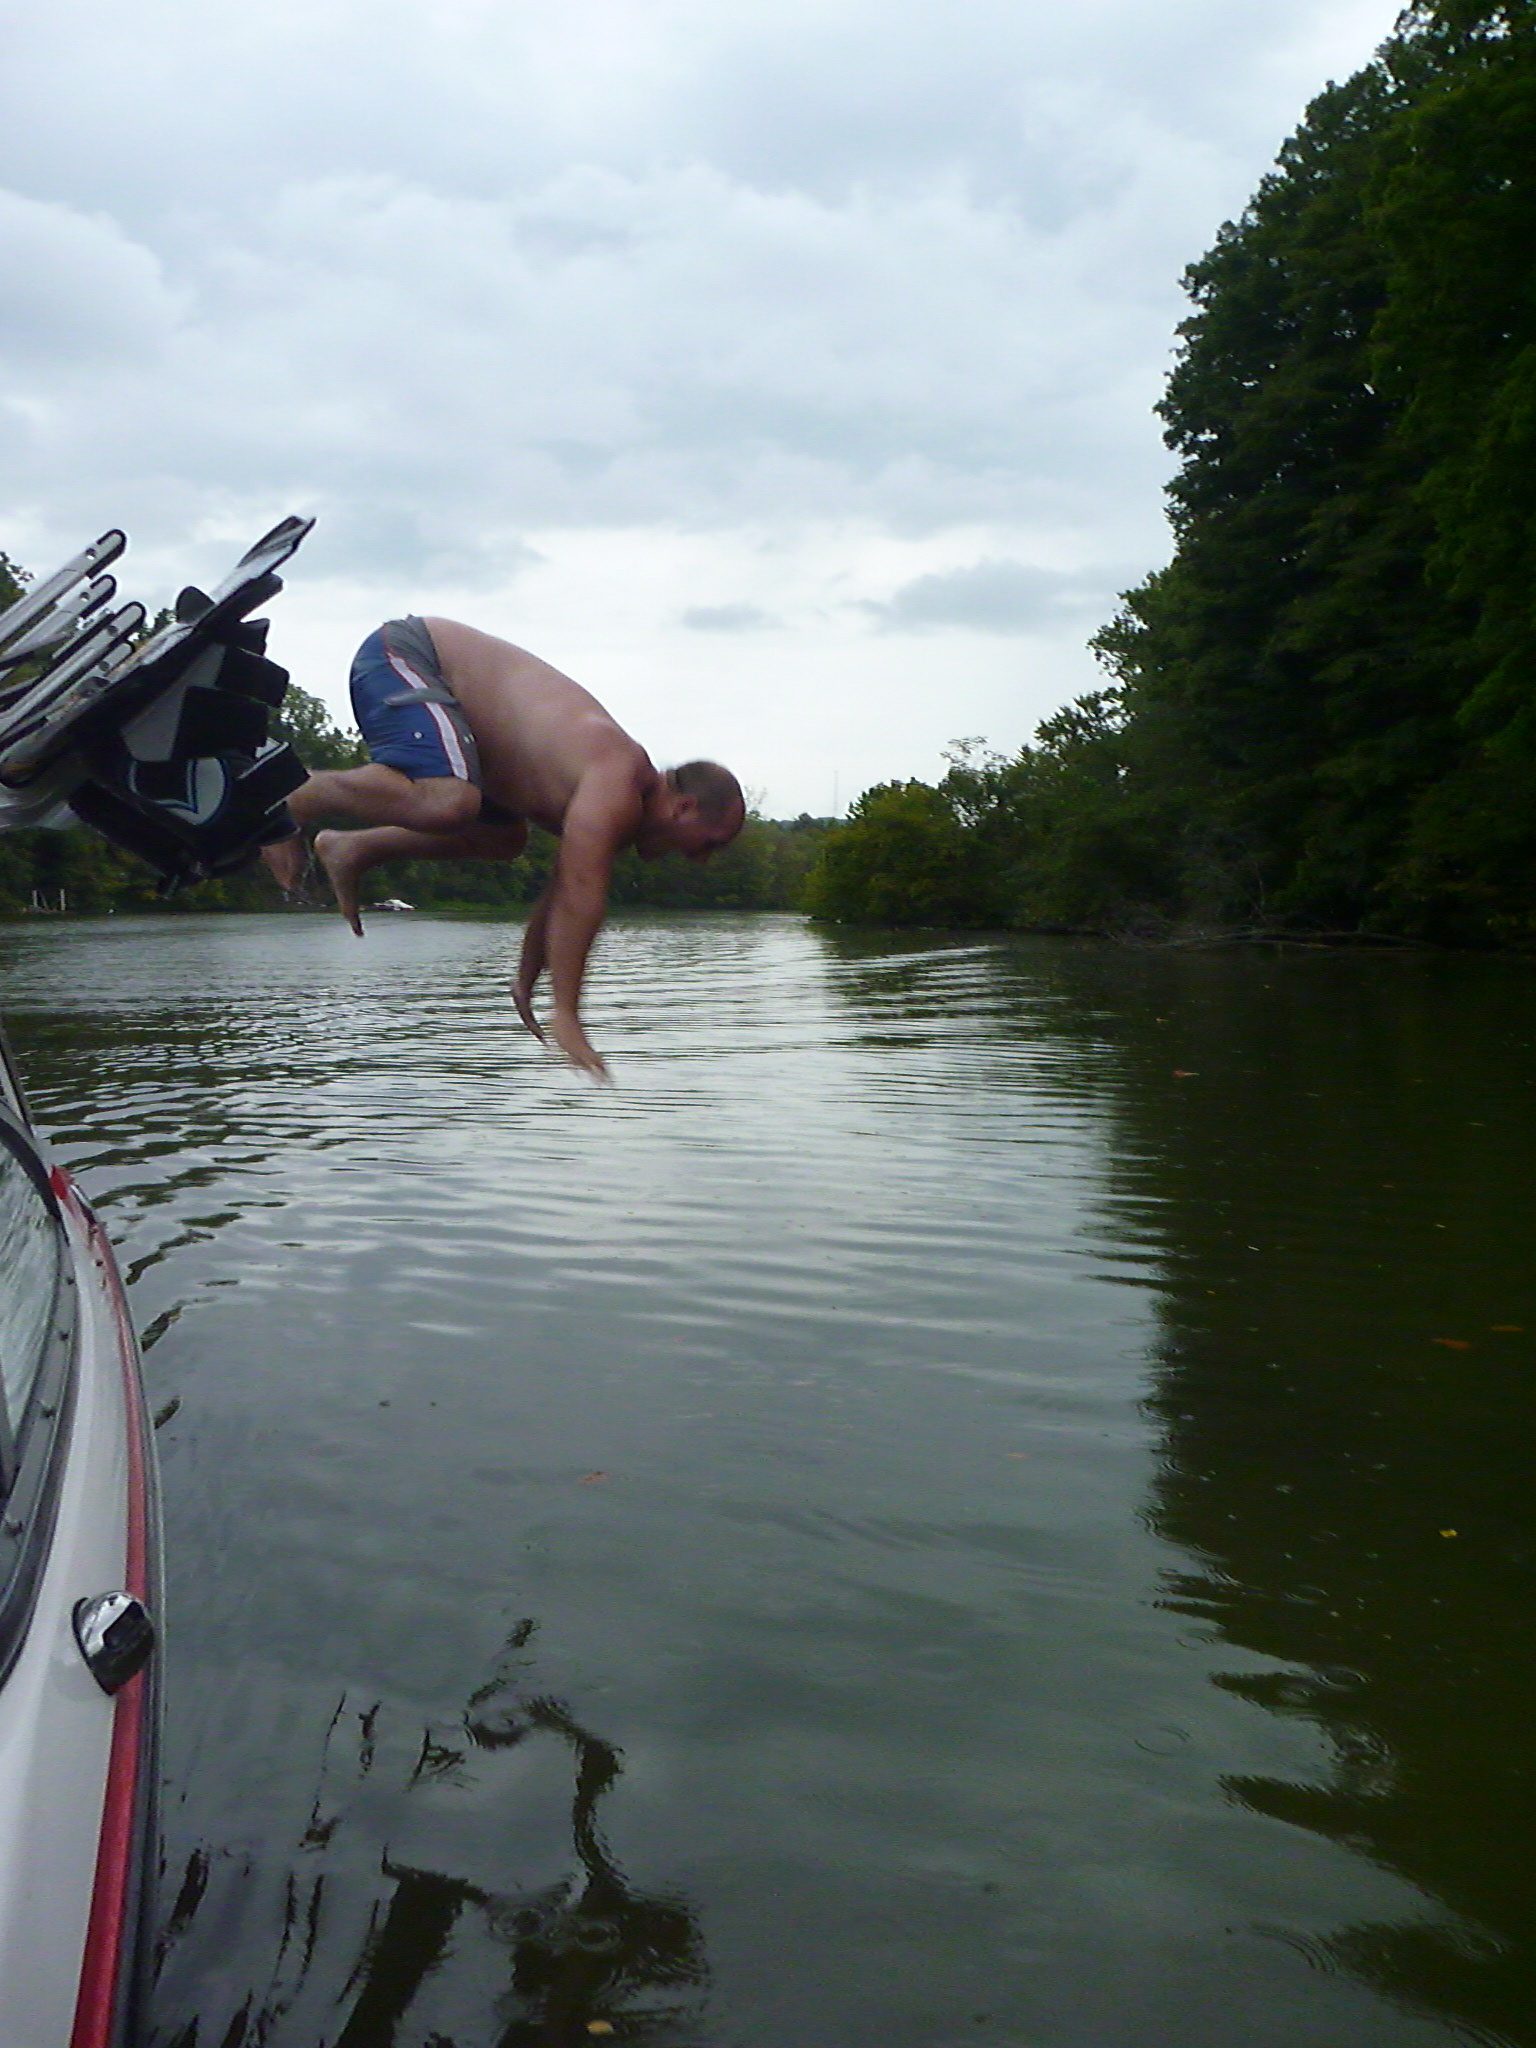 Wake trying to catch some minnows on Snag creek after wake boarding.